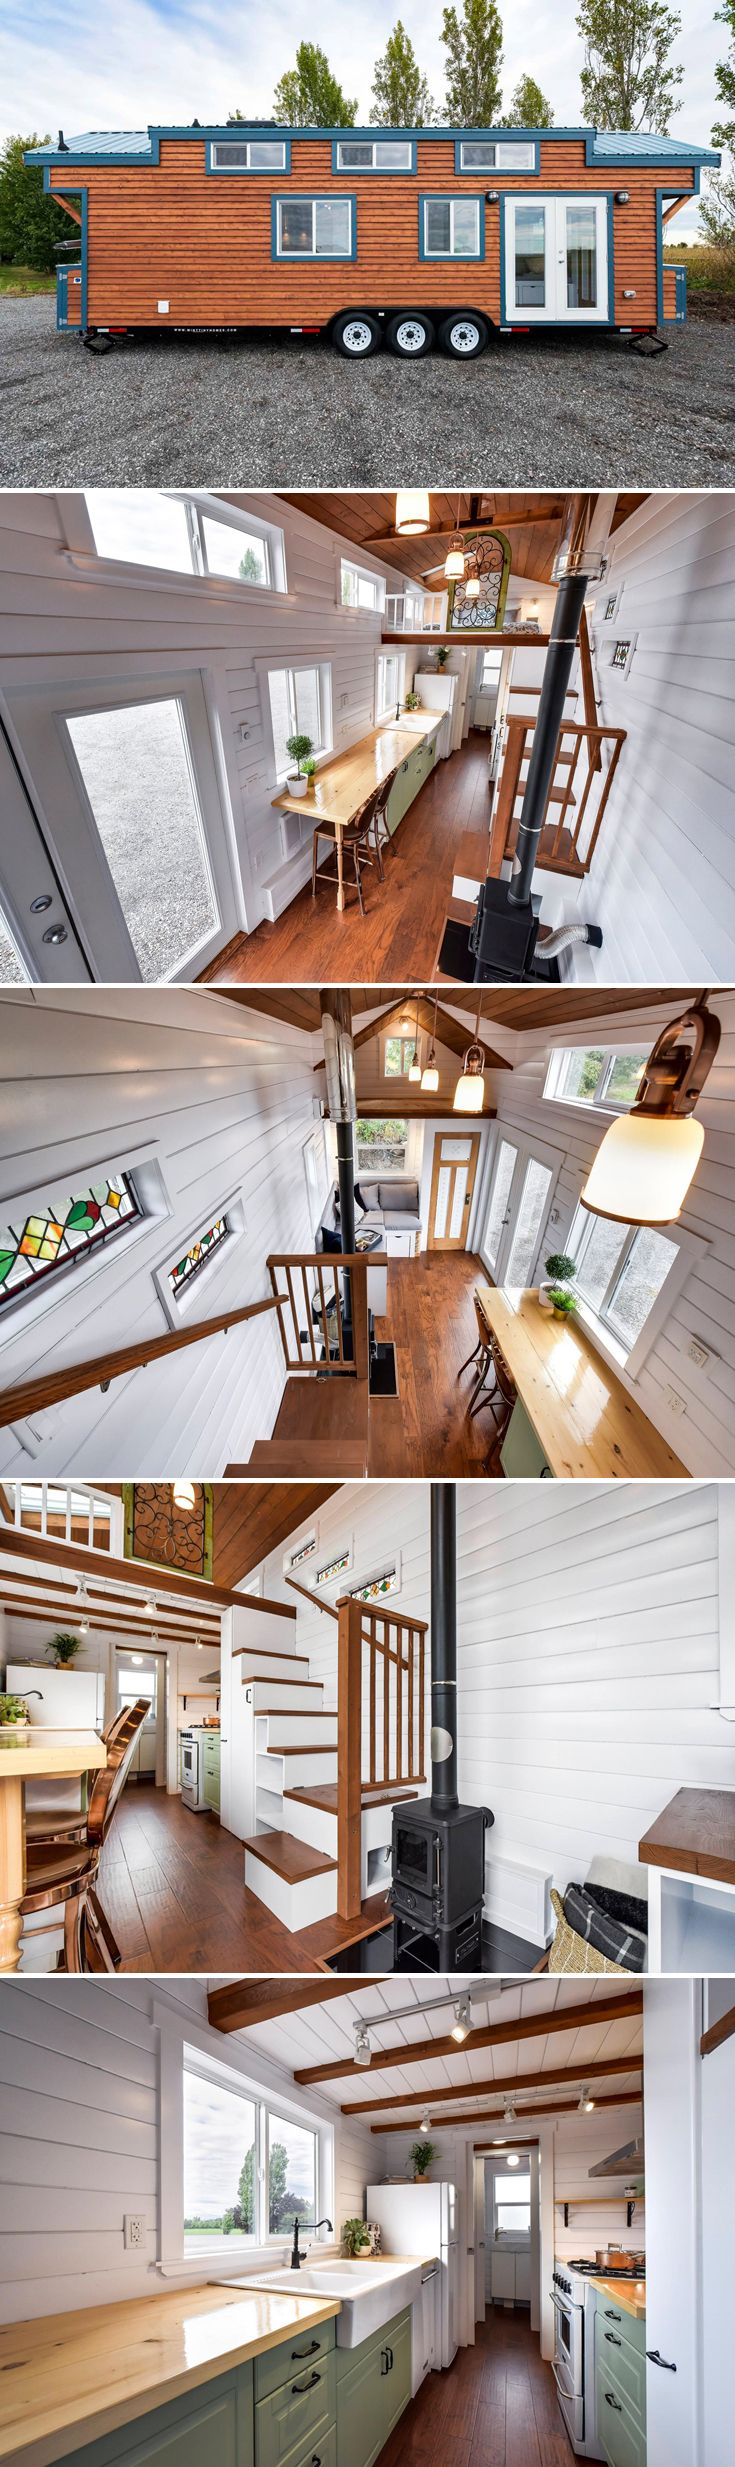 From Mint Tiny Homes is a 30' custom tiny house, complete with personal touches including stained glass windows and a decorative piece on the bedroom loft.  #tinyhouses #tinyhouseonwheels #tinyhome